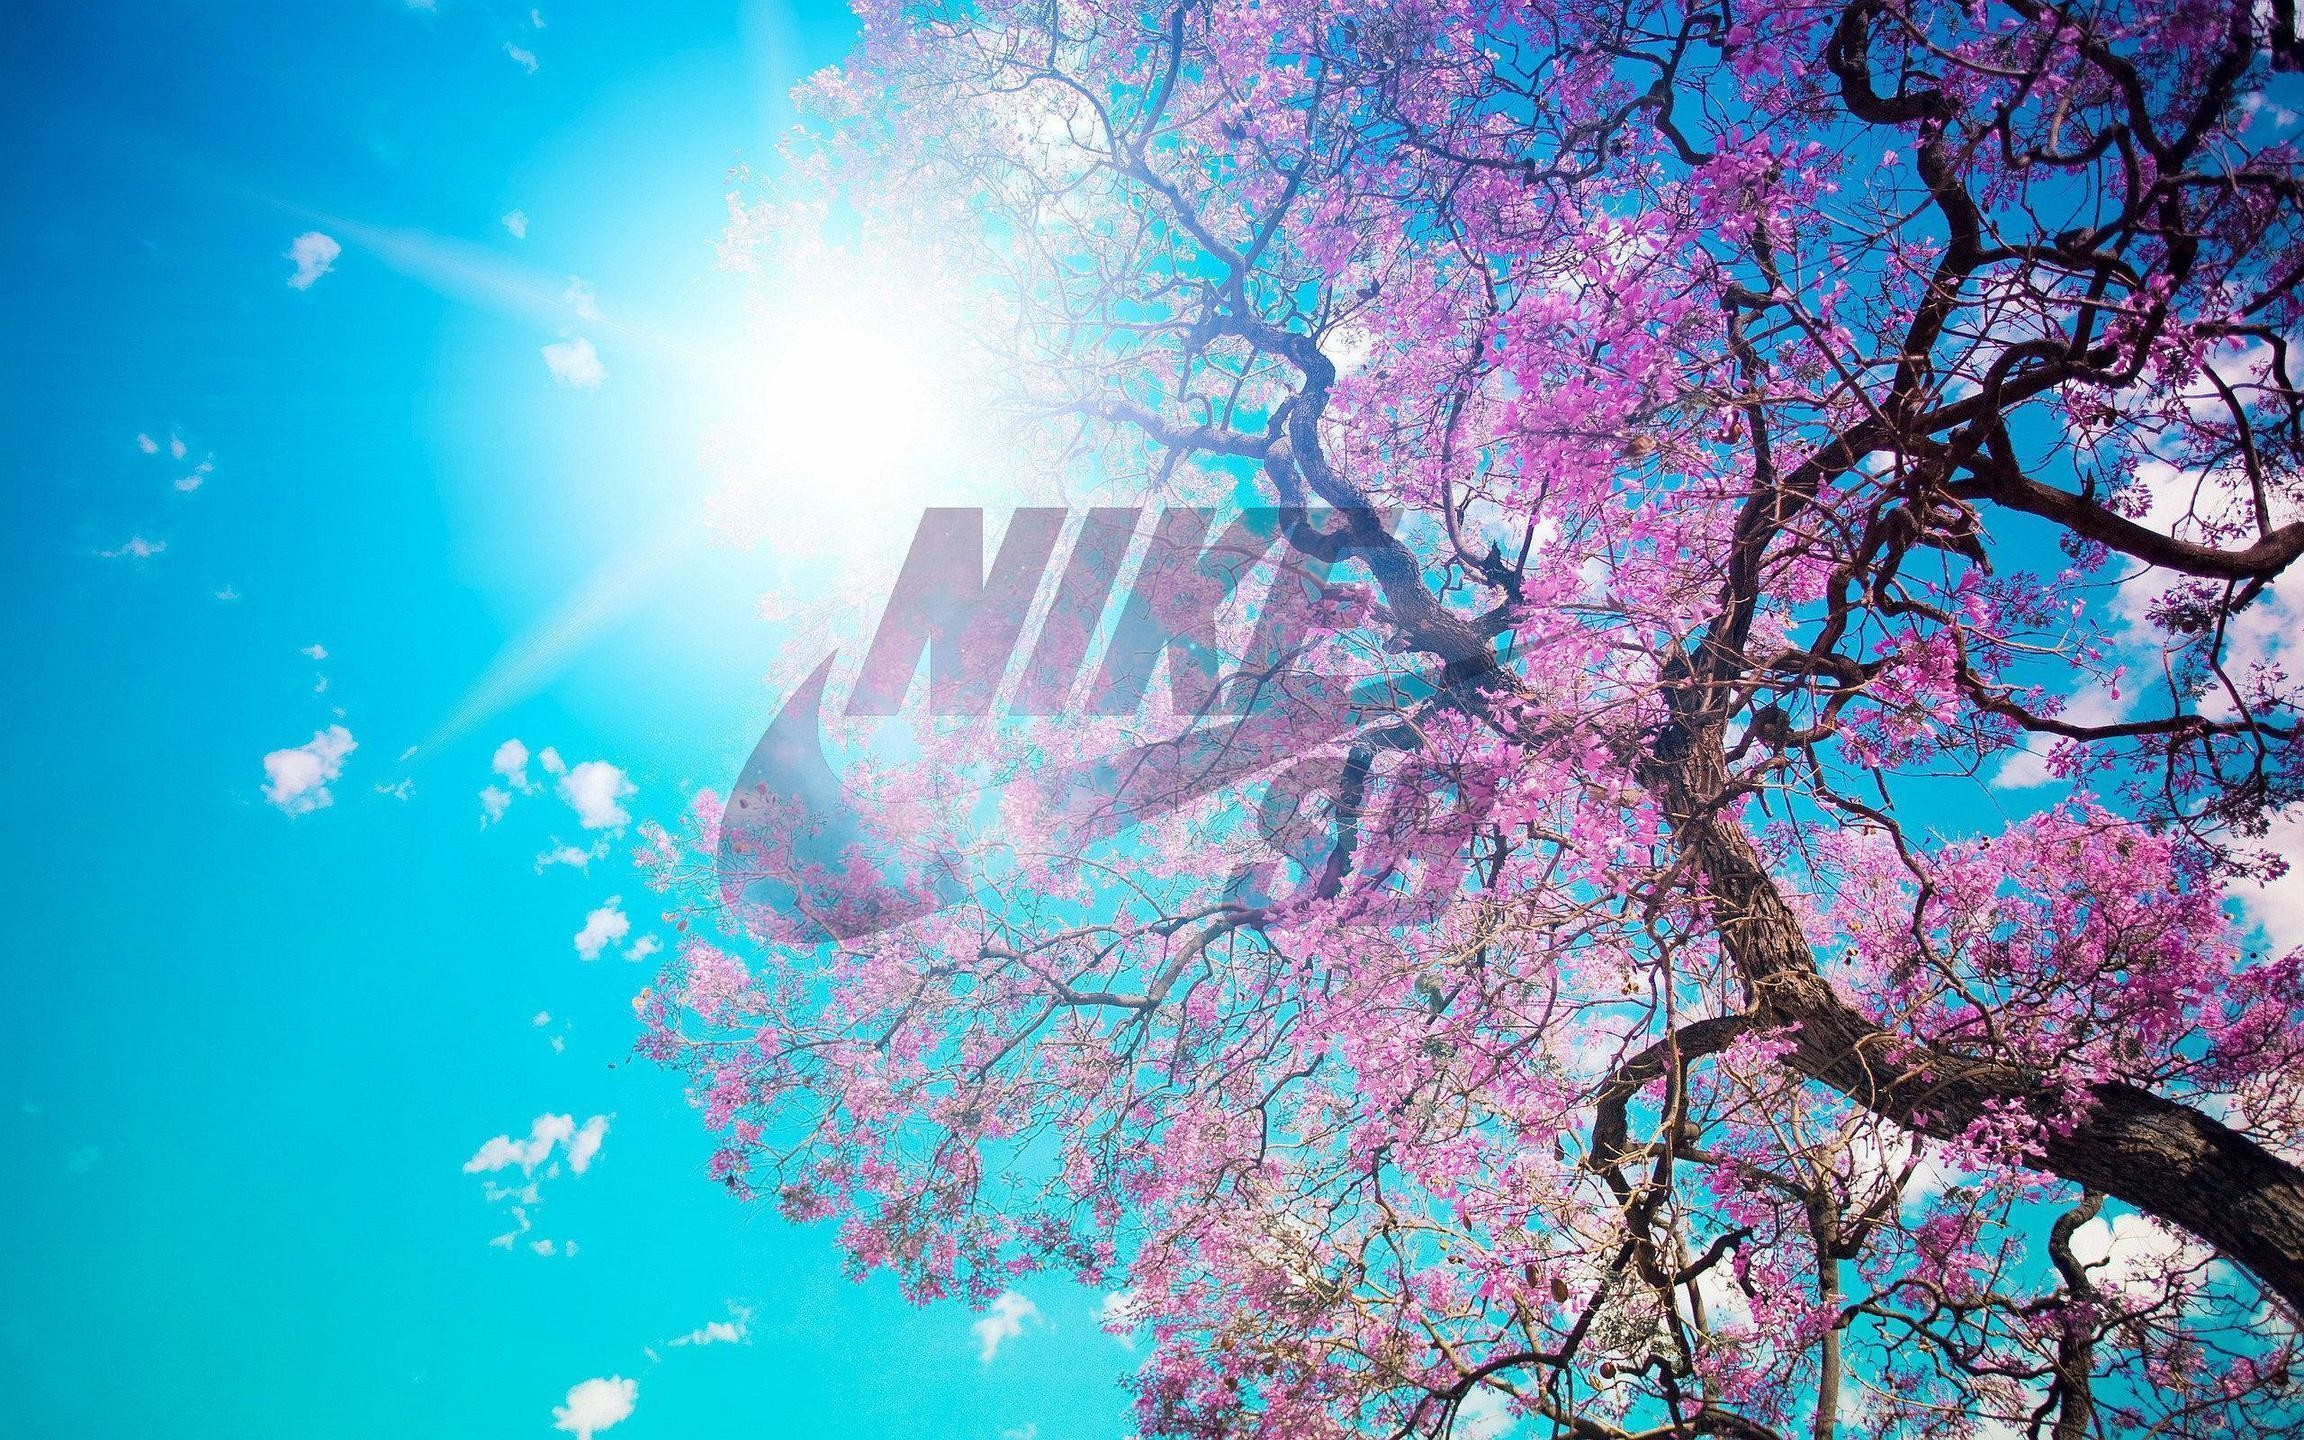 2304x1440 Pics Photos - Nike Wallpapers And Nike Sb Wallpapers